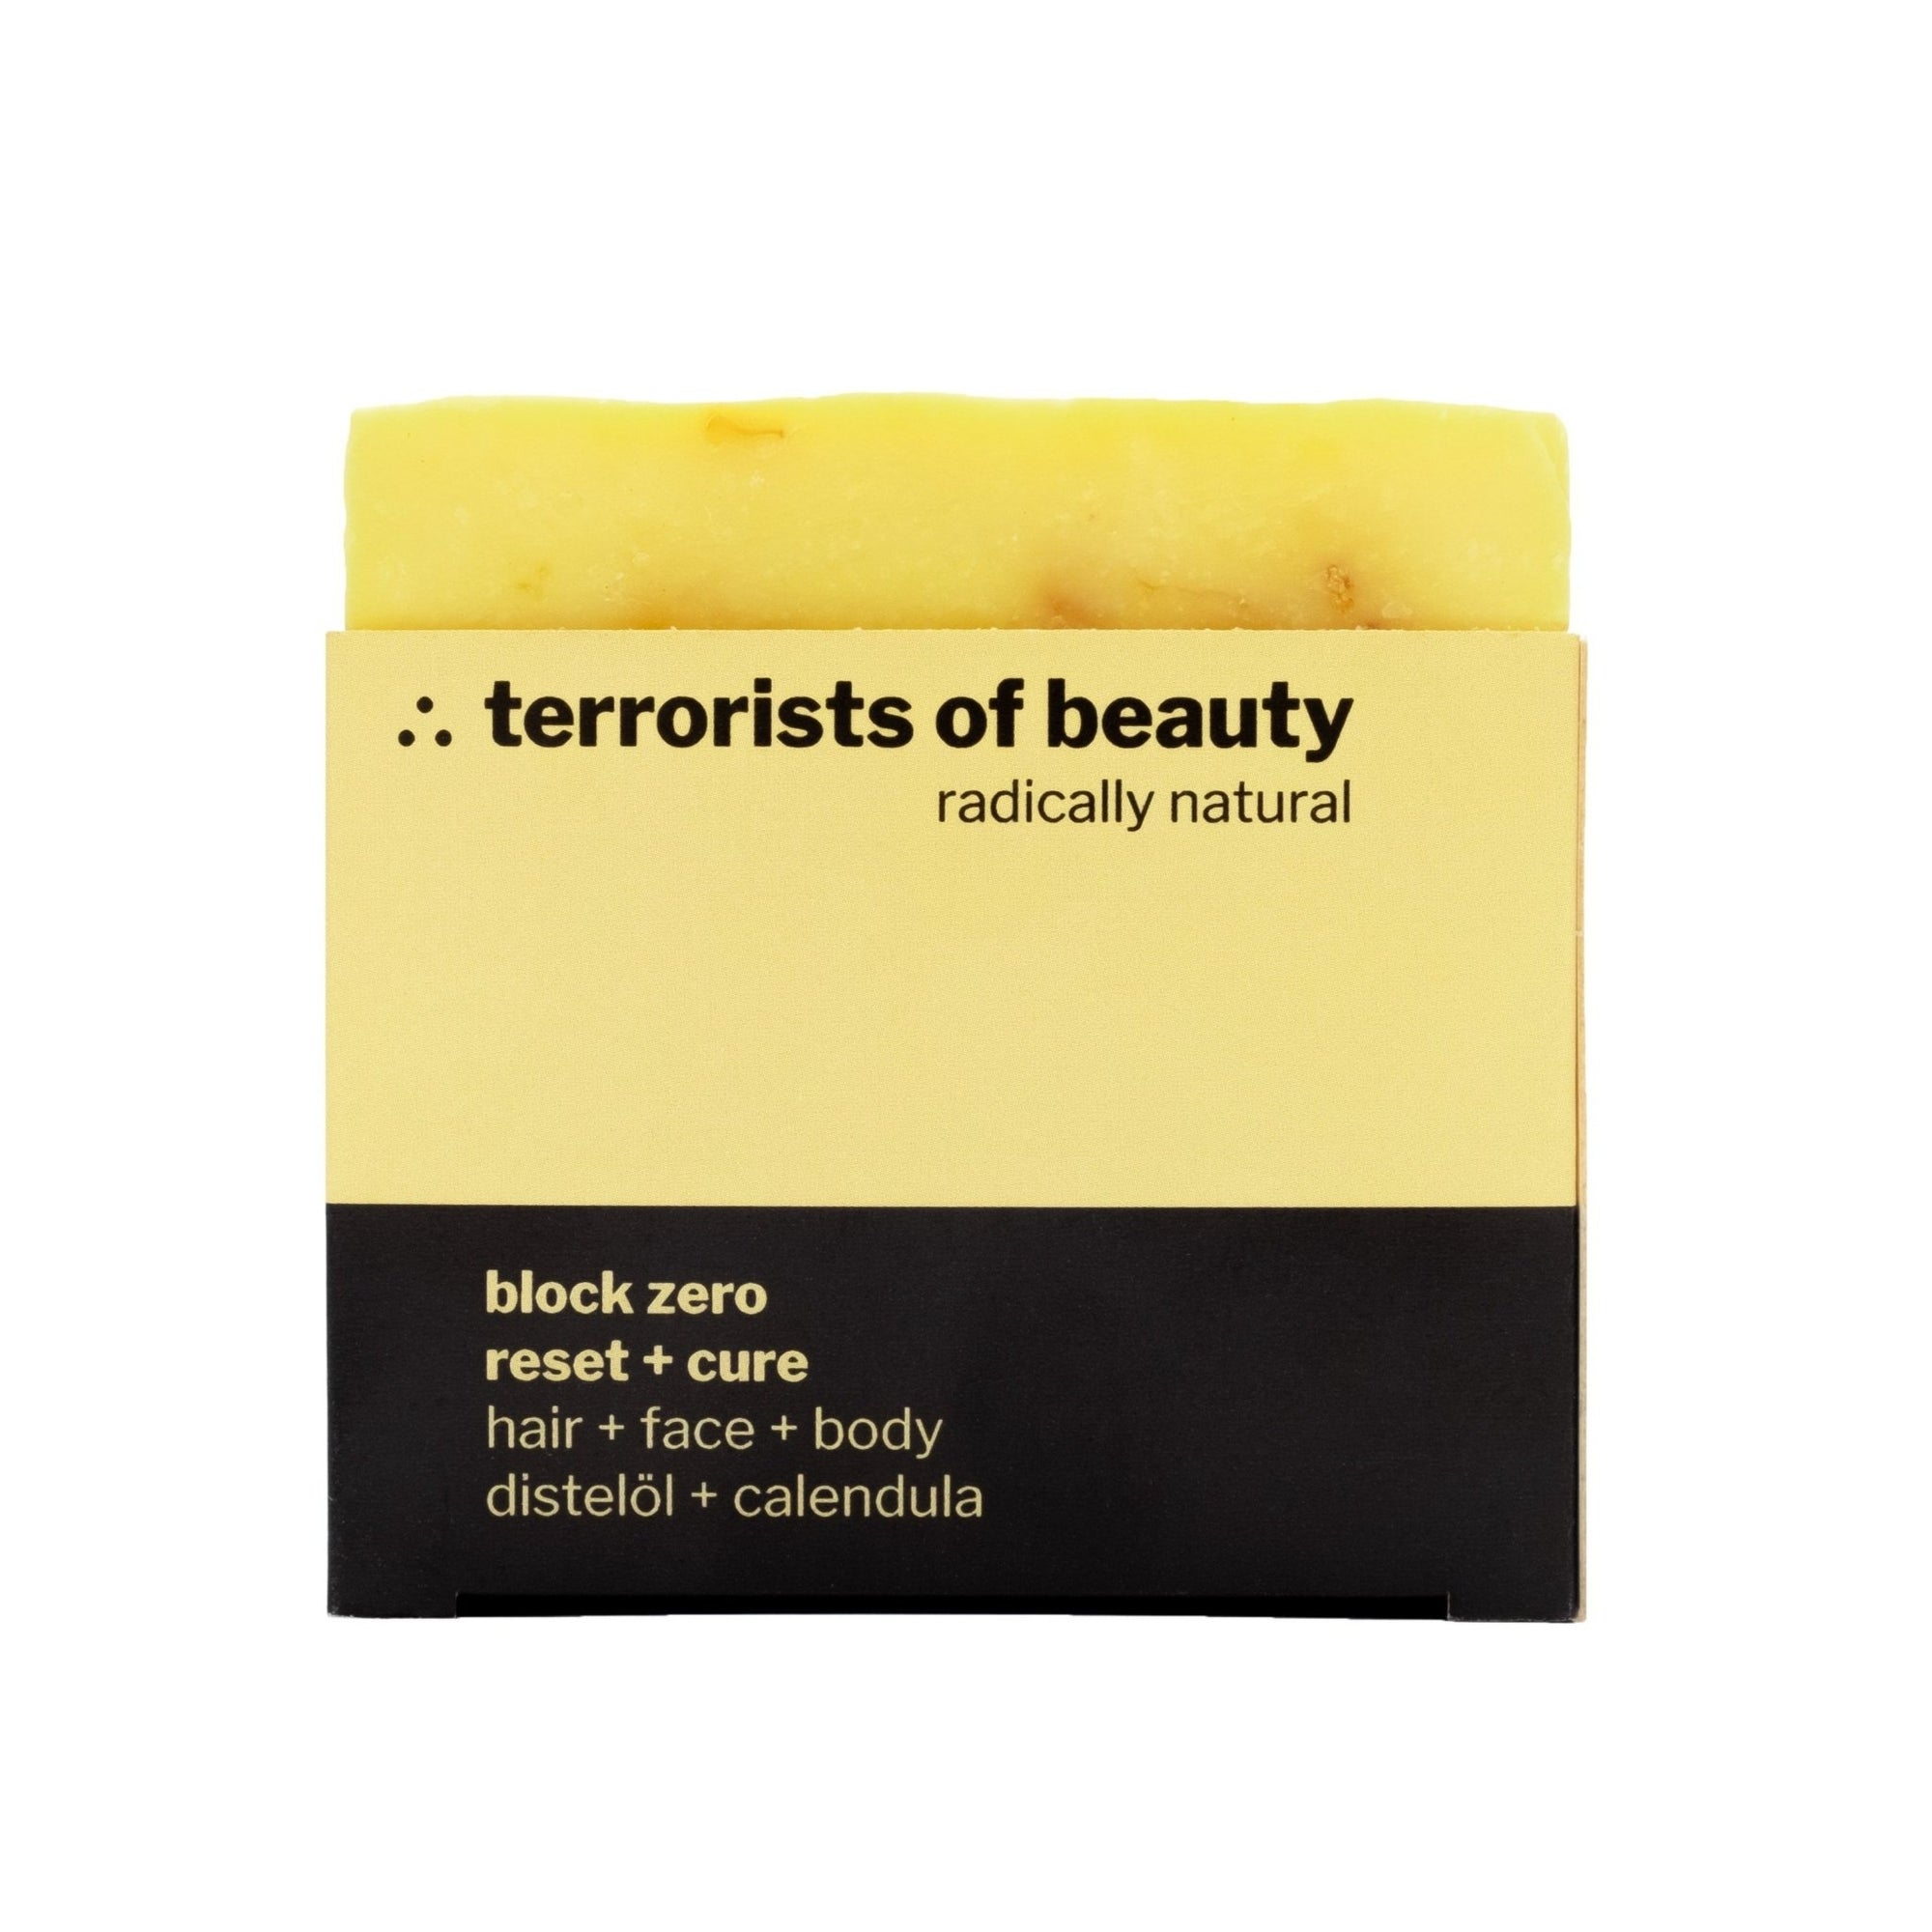 terrorists of beauty blockseife | block zero reset + cure - LANGBRETT